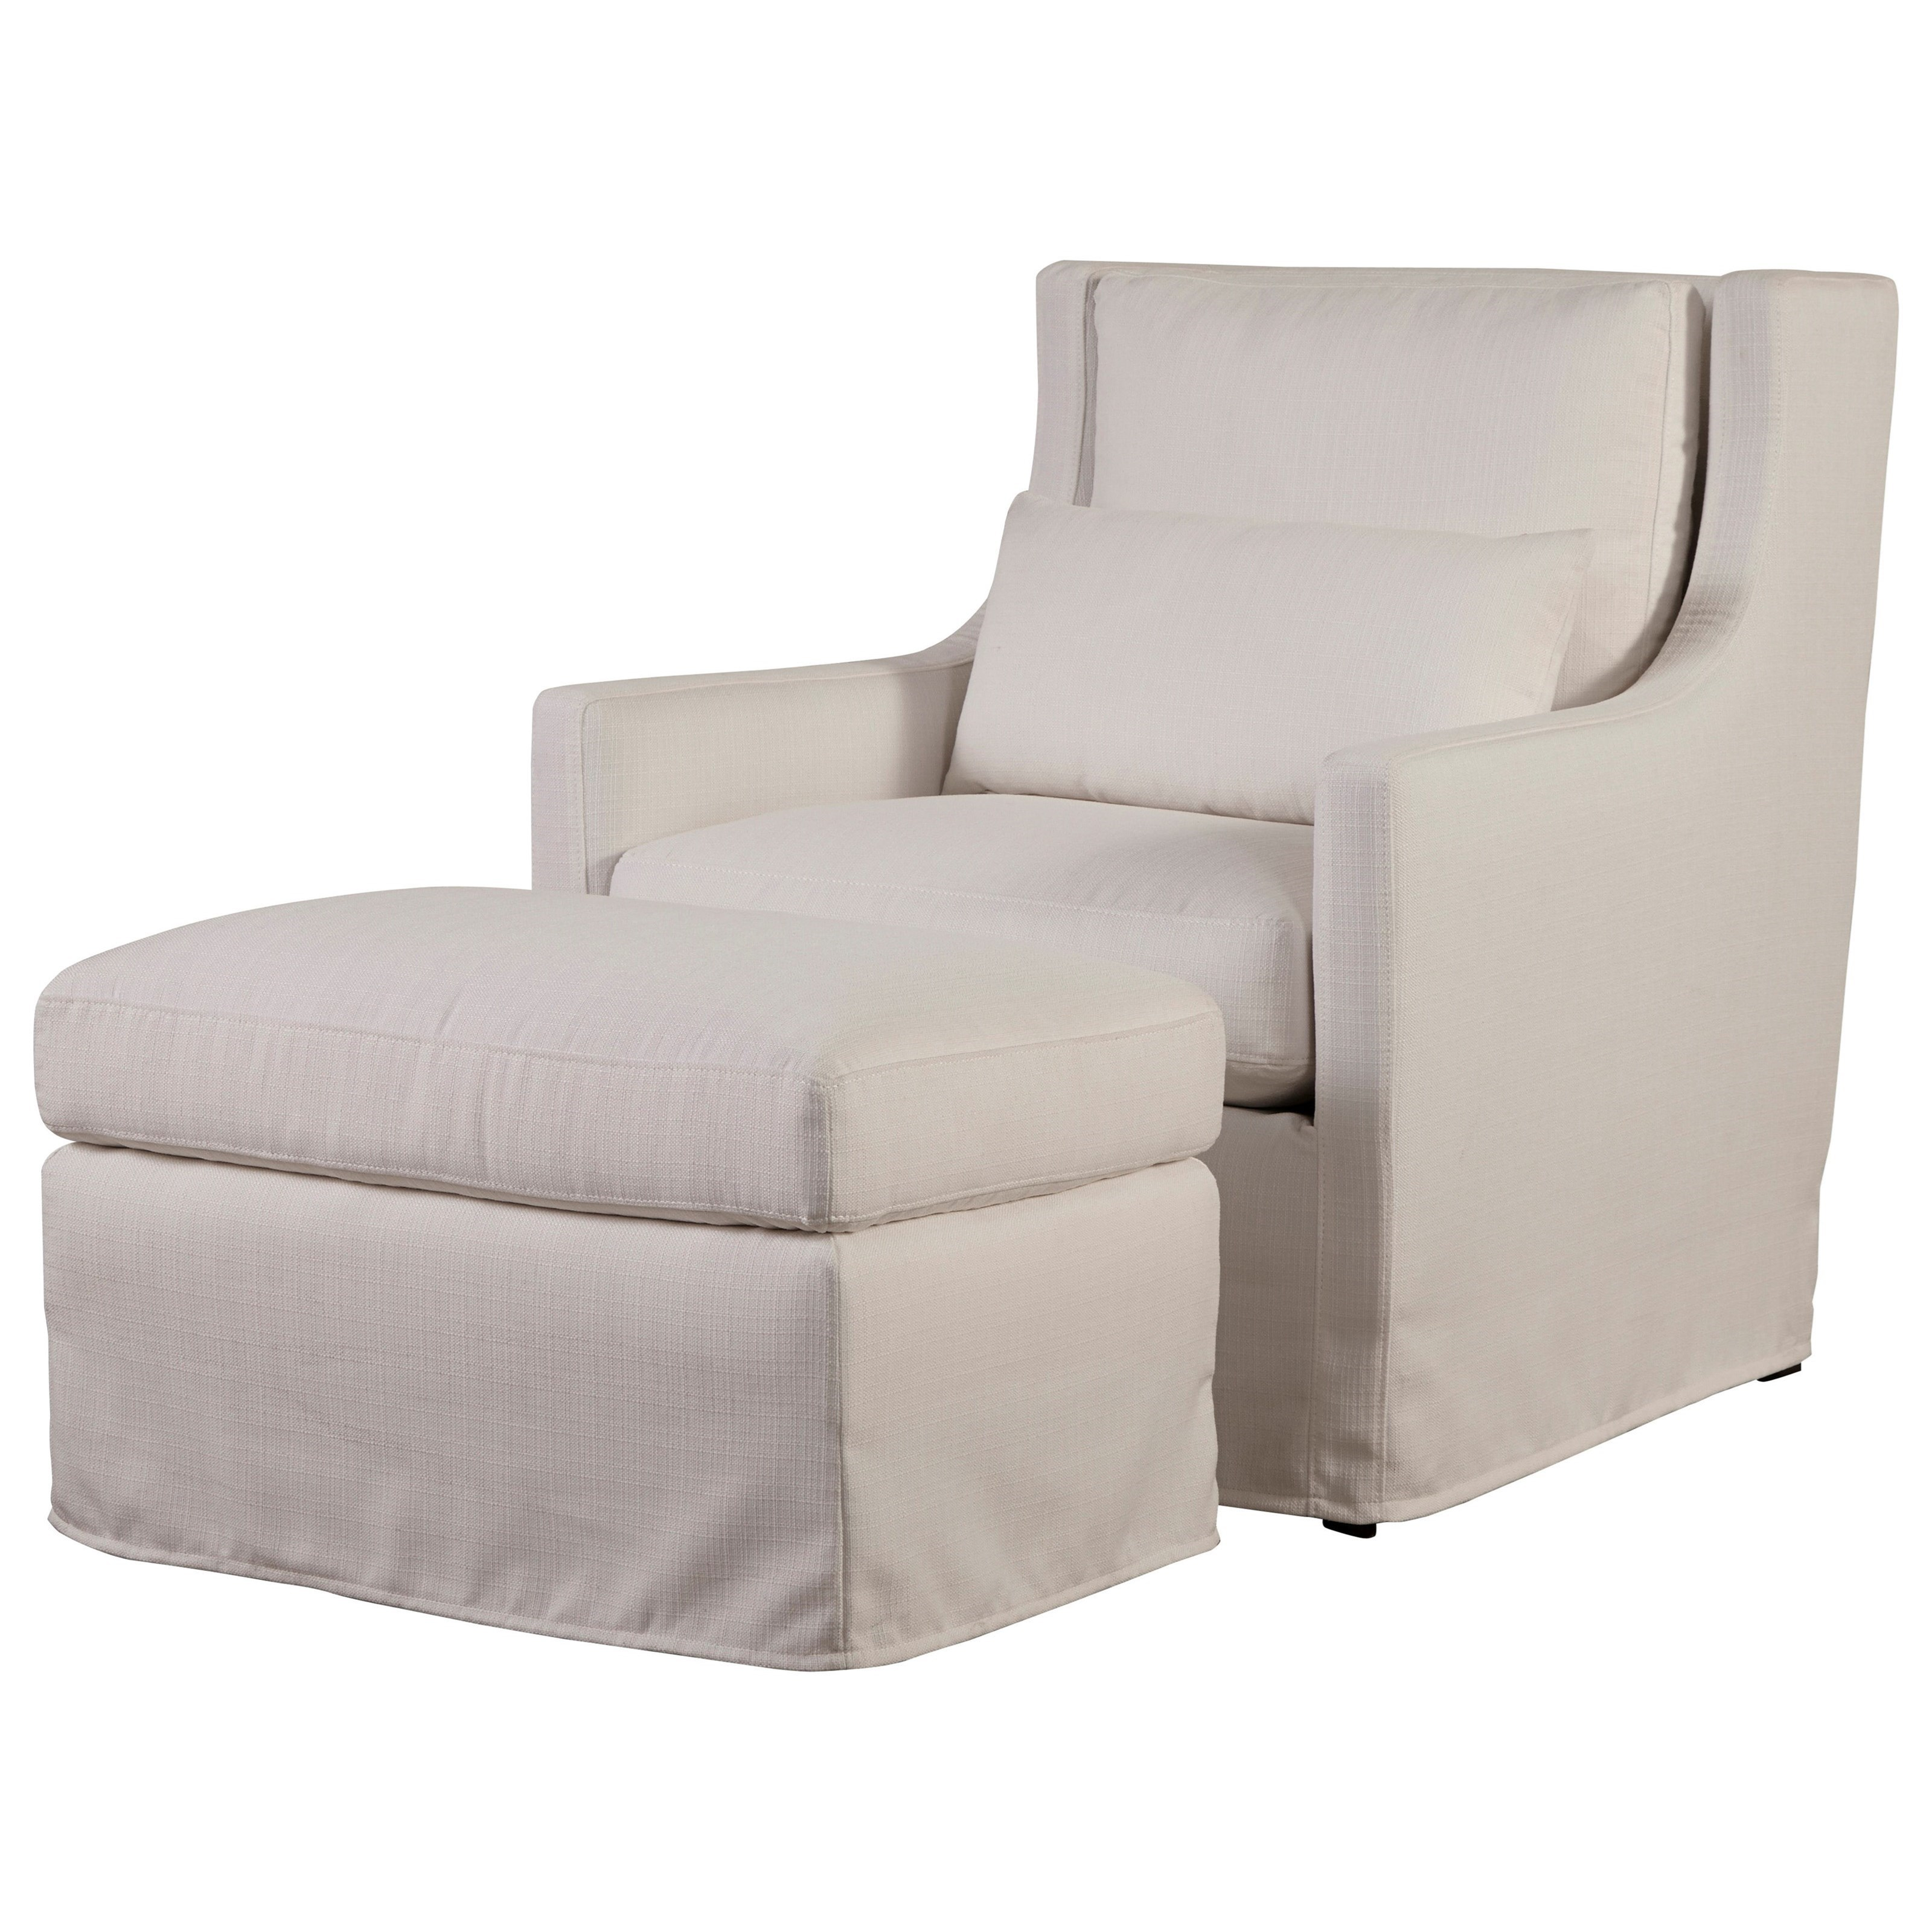 Sloane Upholstered Chair & Ottoman Set by Universal at Baer's Furniture